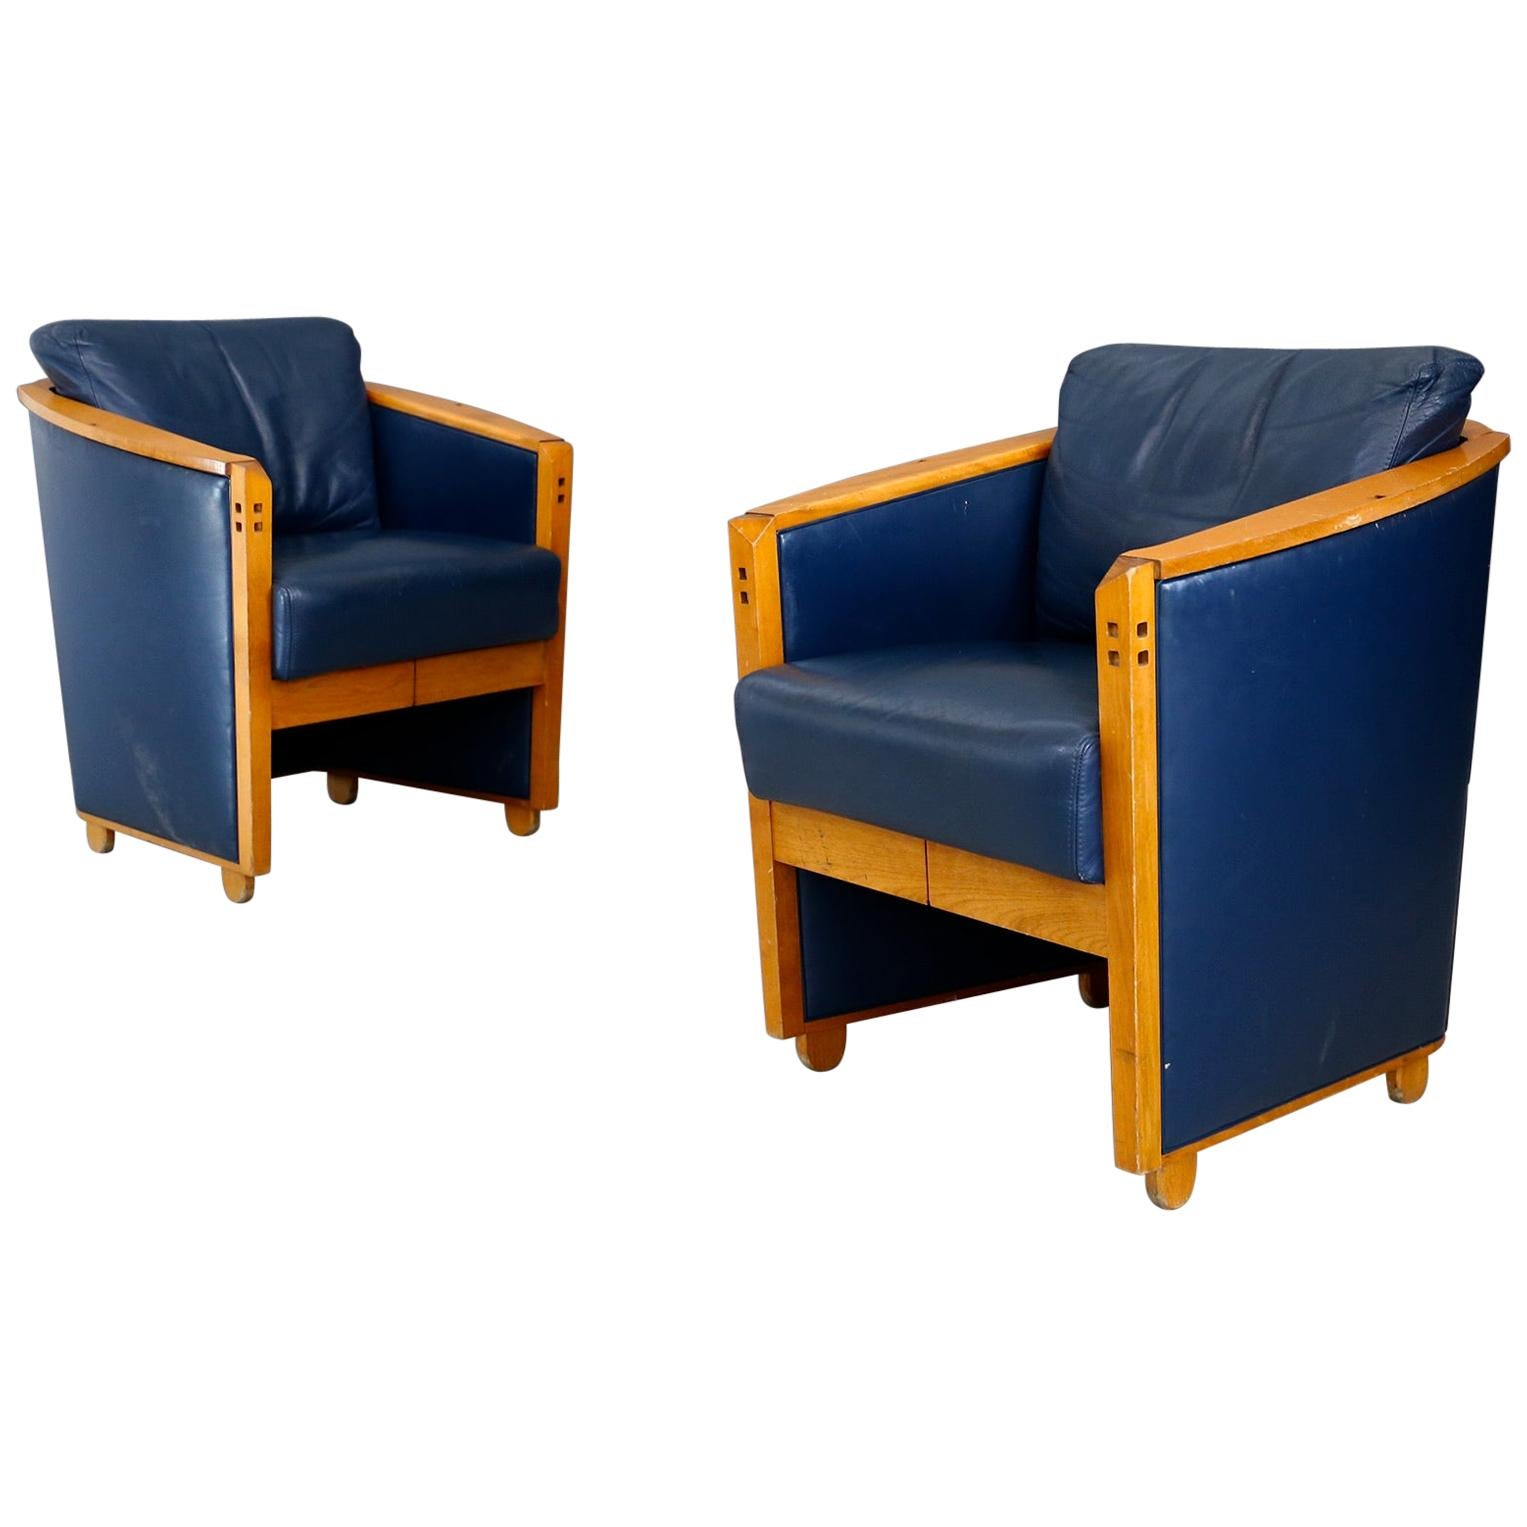 "Pair of Armchairs by Umberto Asnago ""project series"" for Giorgetti, 1990"